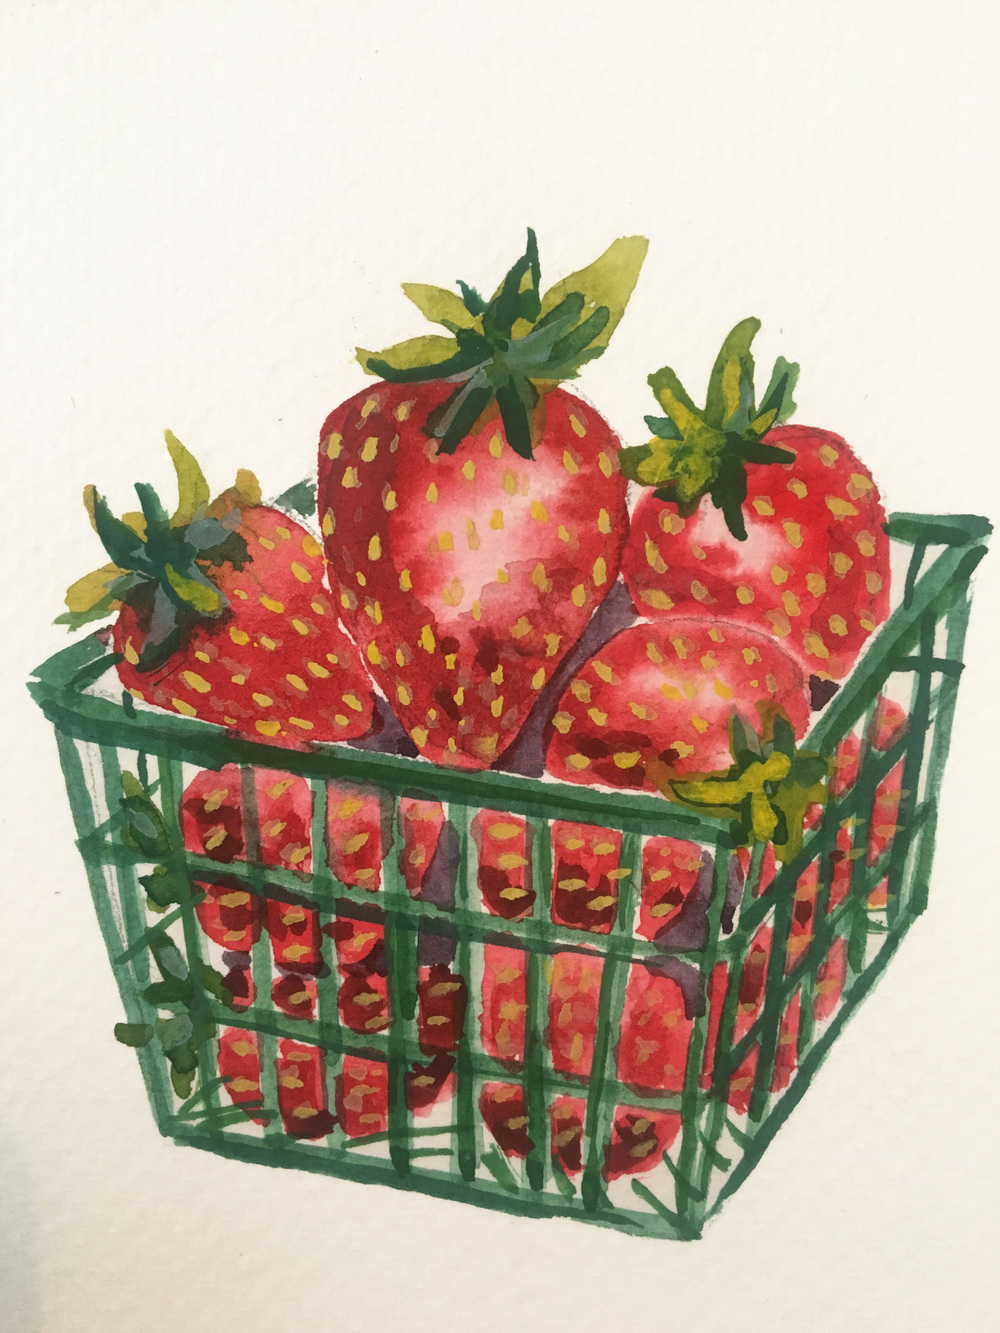 A basket of strawberries painted on a postcard for a friend